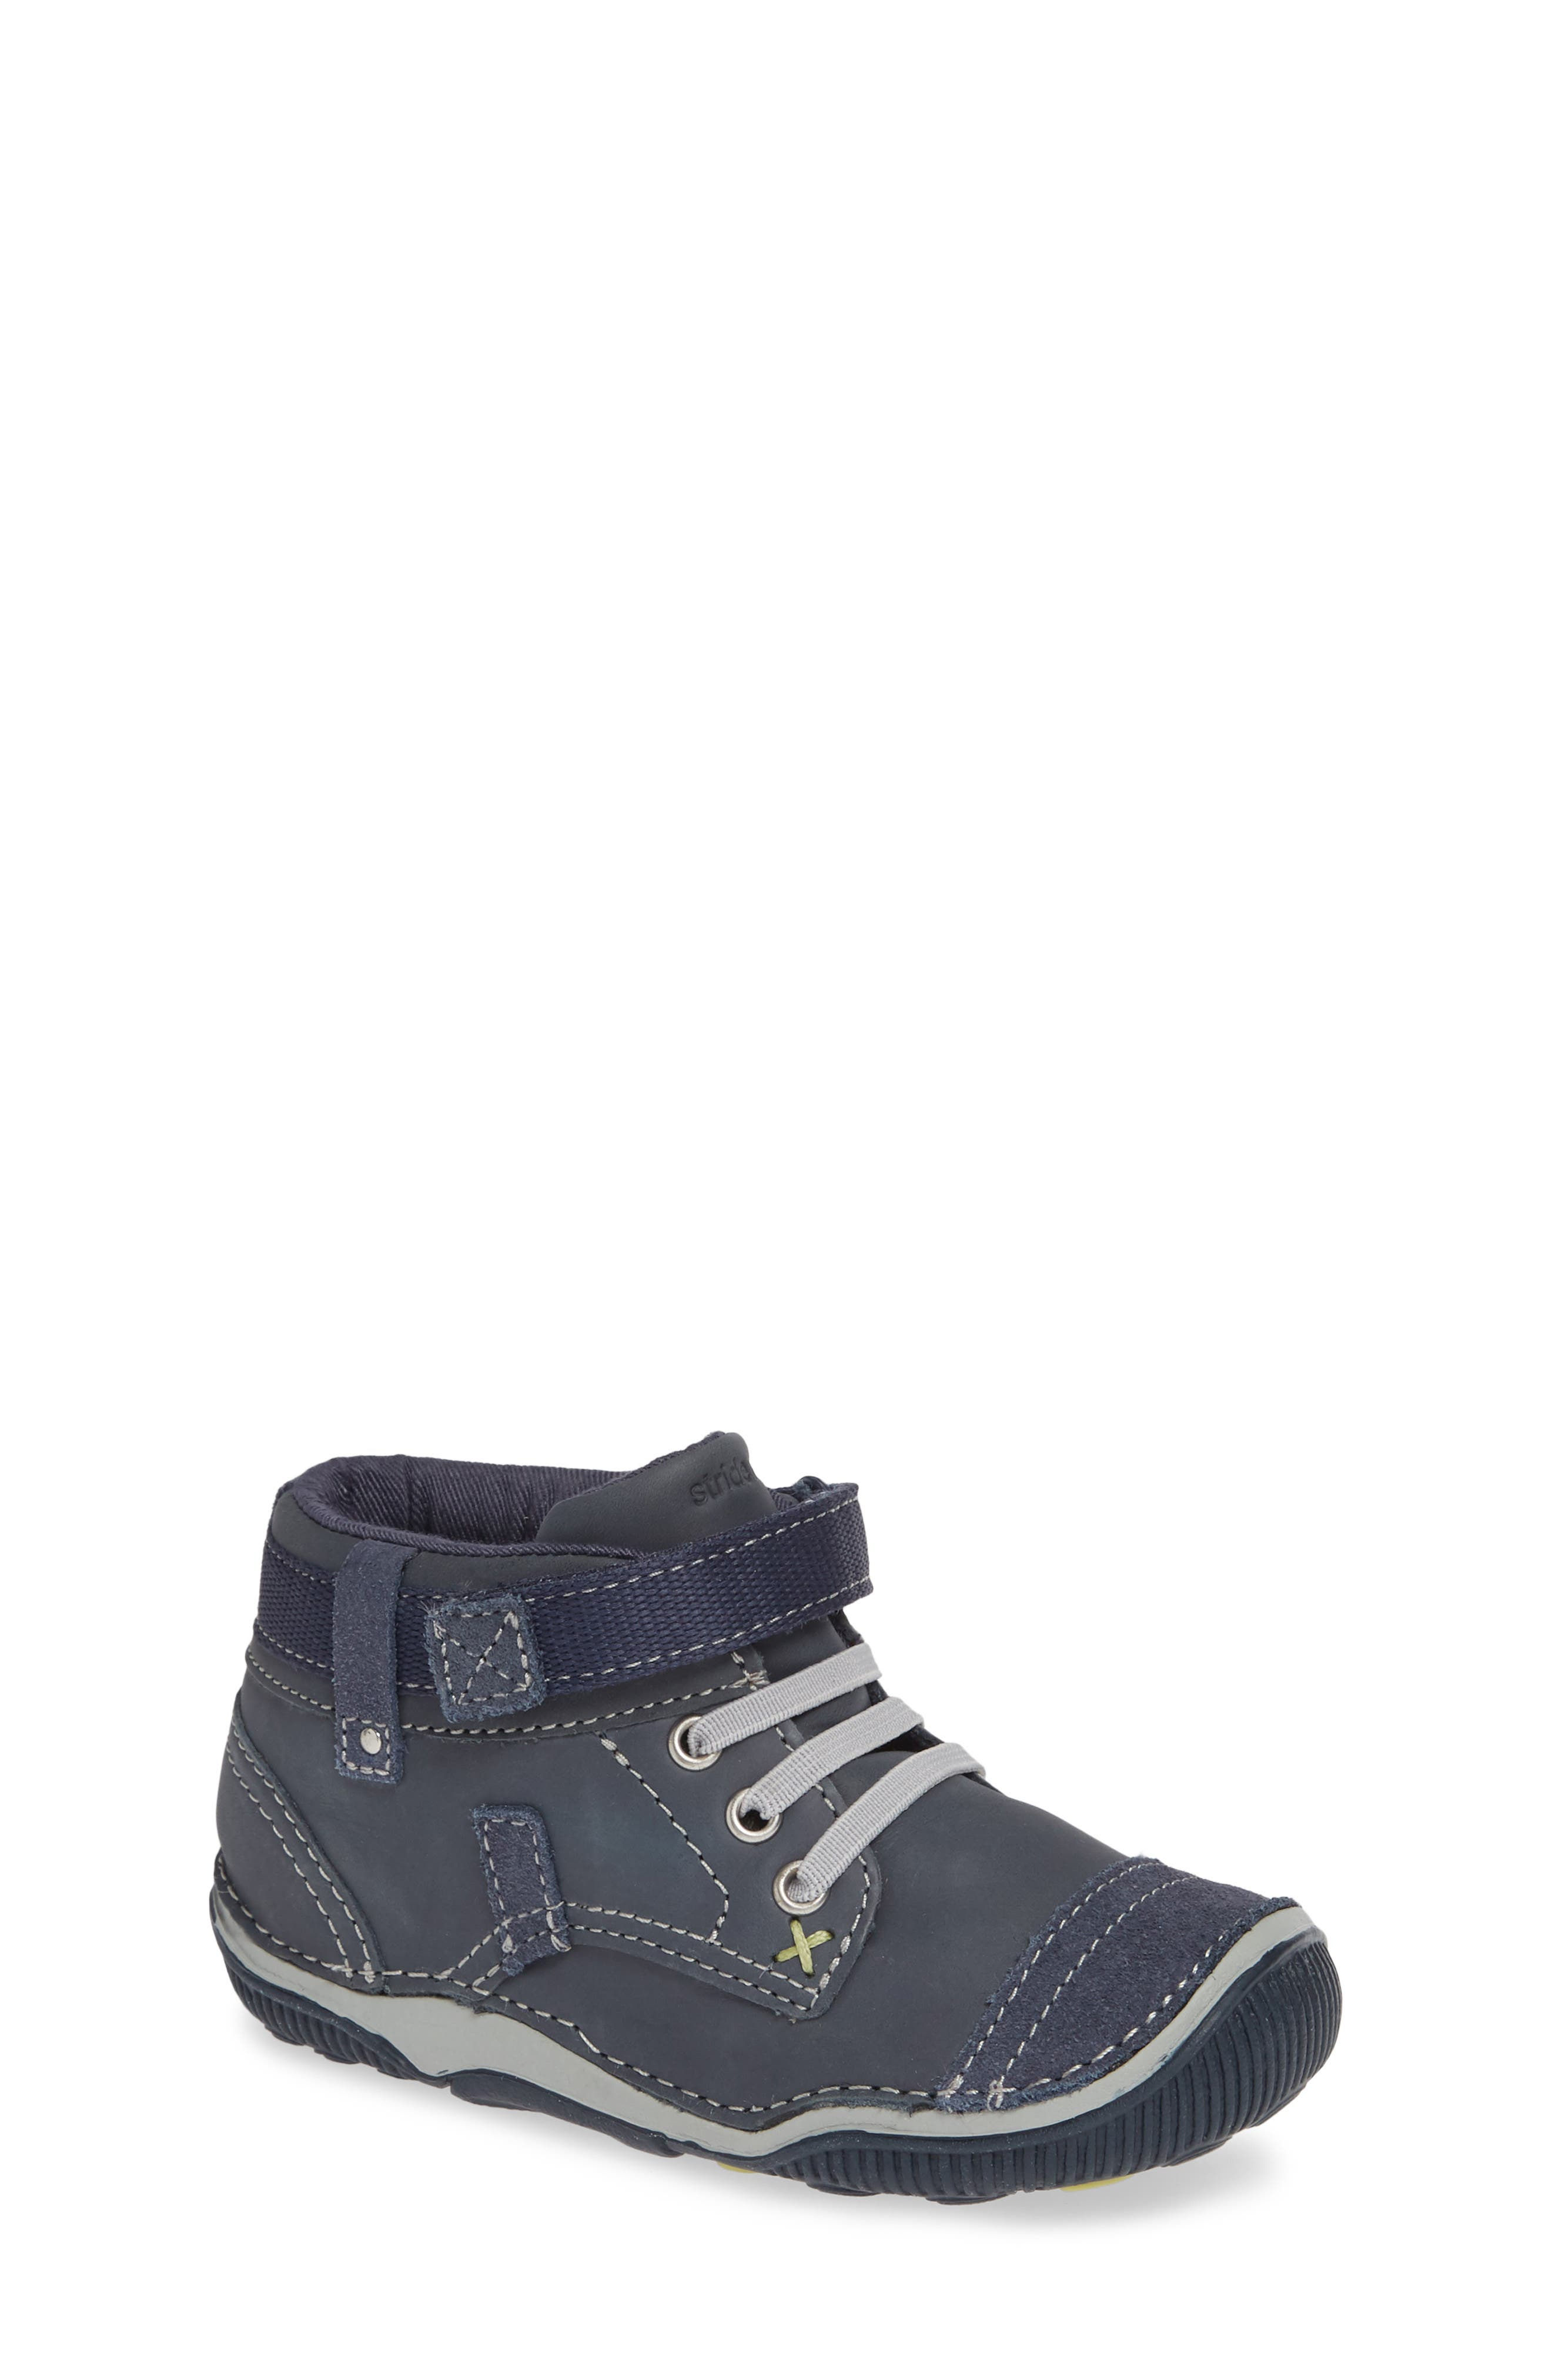 'Garrett' High Top Bootie Sneaker,                         Main,                         color, NAVY